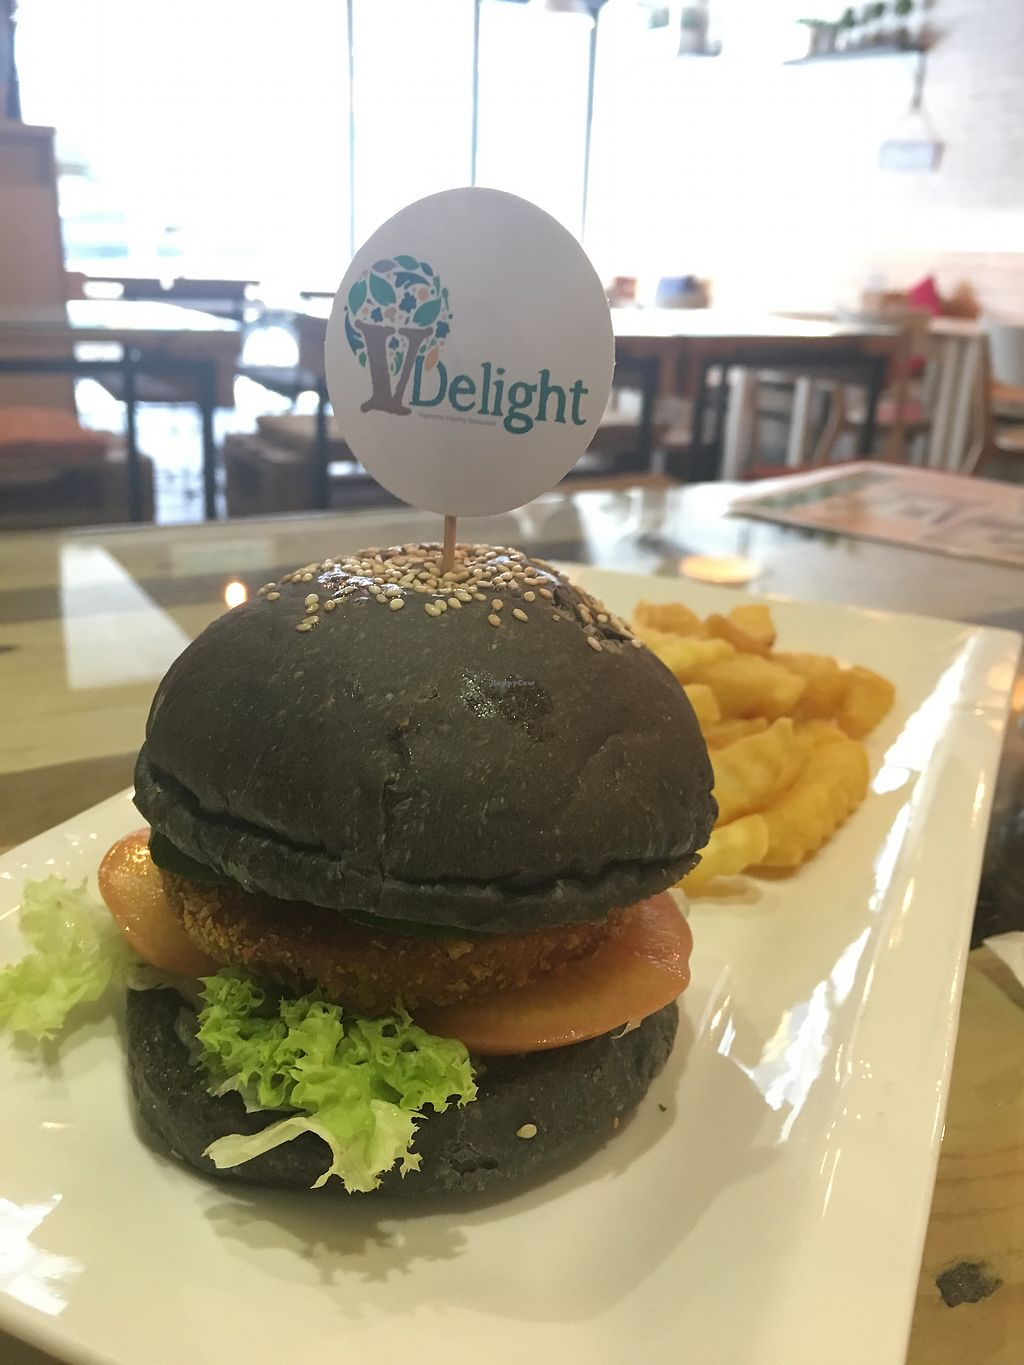 """Photo of V Delight  by <a href=""""/members/profile/Spaghetti_monster"""">Spaghetti_monster</a> <br/>Pumpkin burger (no mayo) <br/> October 9, 2017  - <a href='/contact/abuse/image/66224/313565'>Report</a>"""